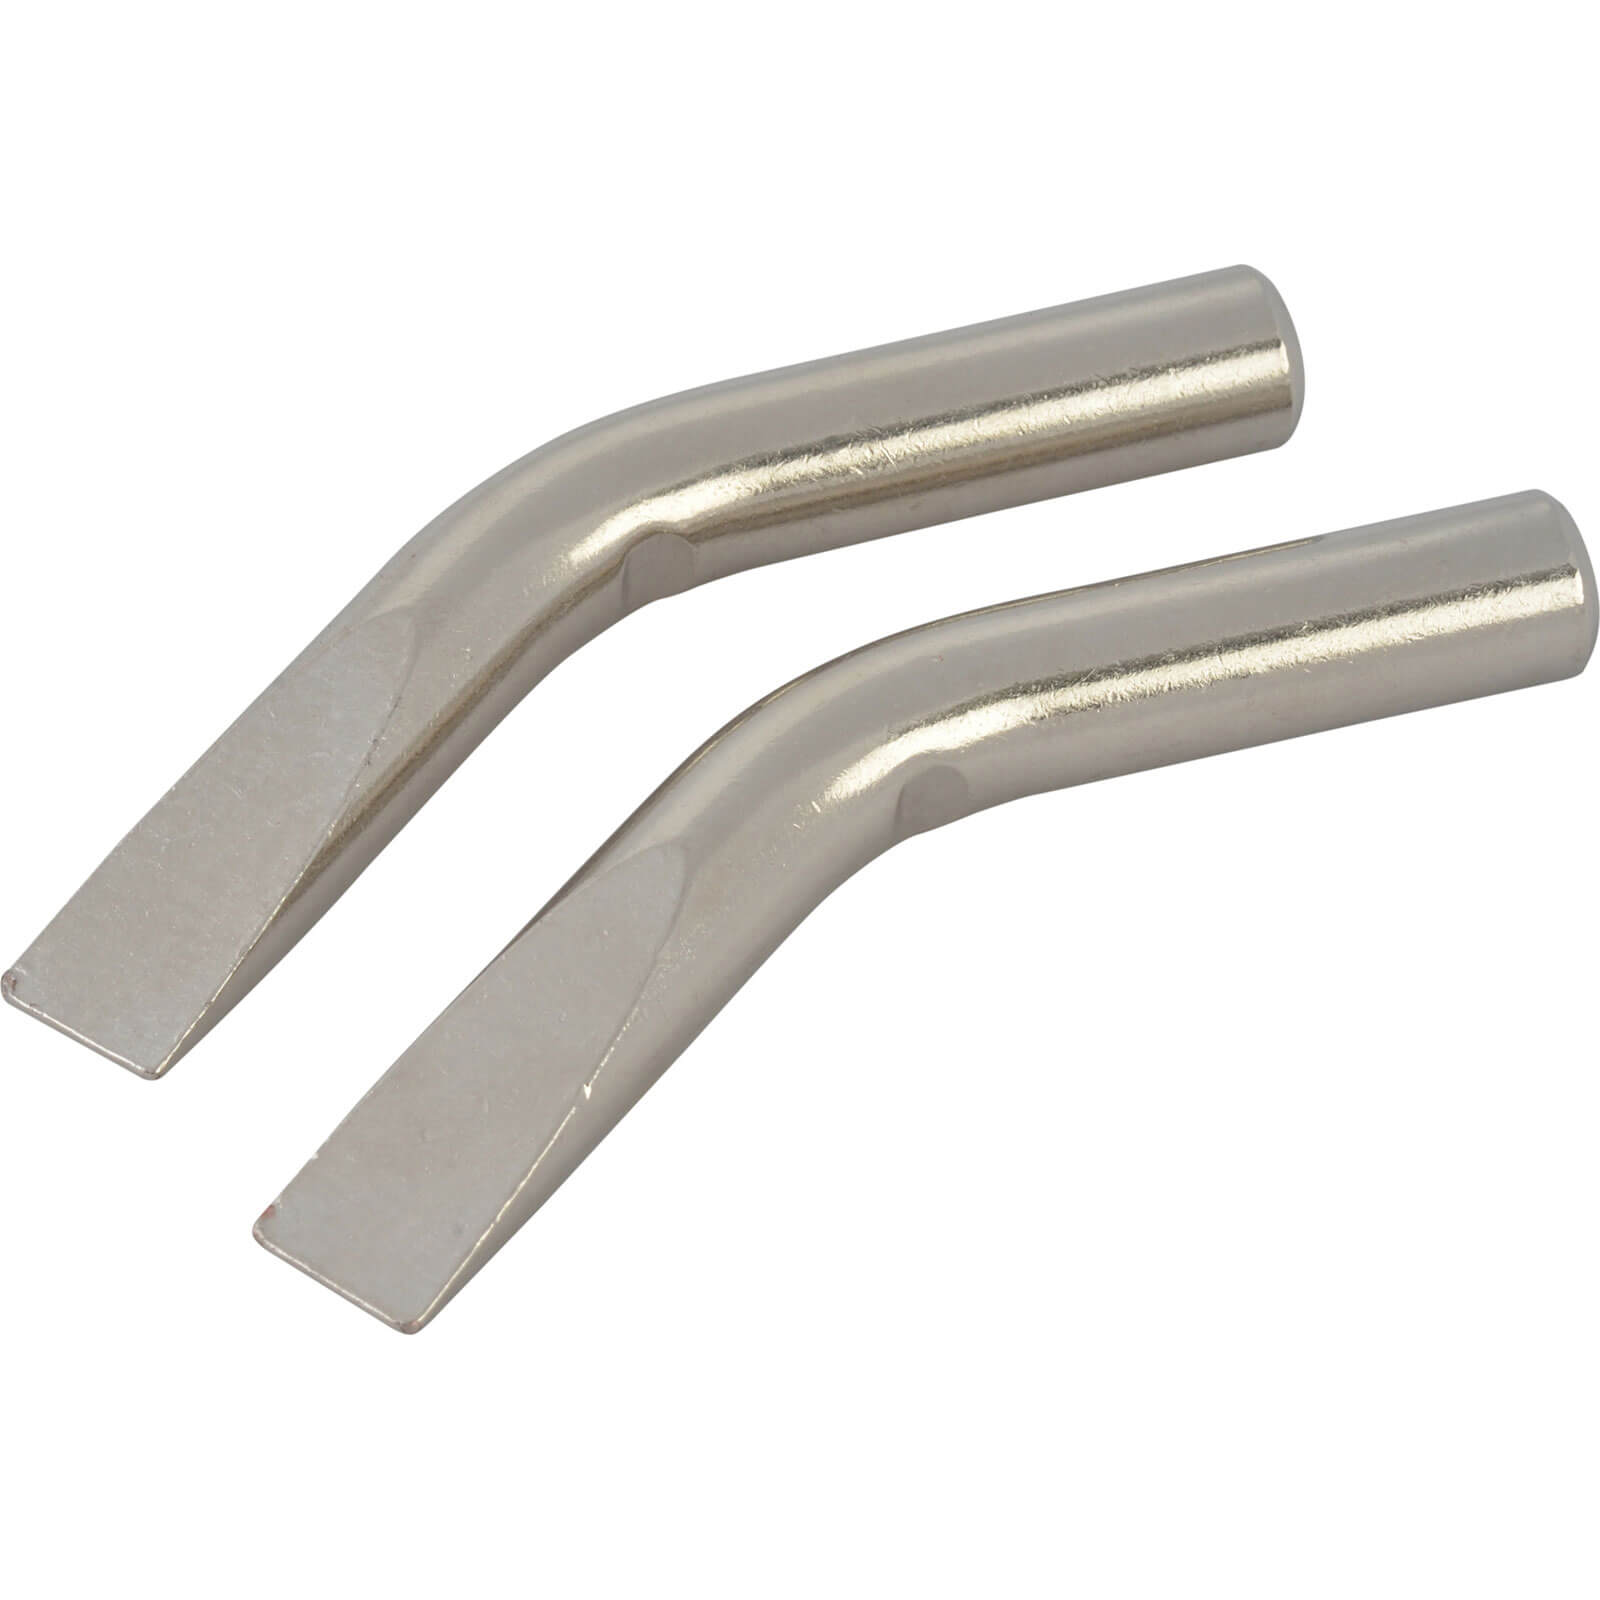 Image of Weller 2 Piece Bent Tip Set for SI75 Soldering Iron